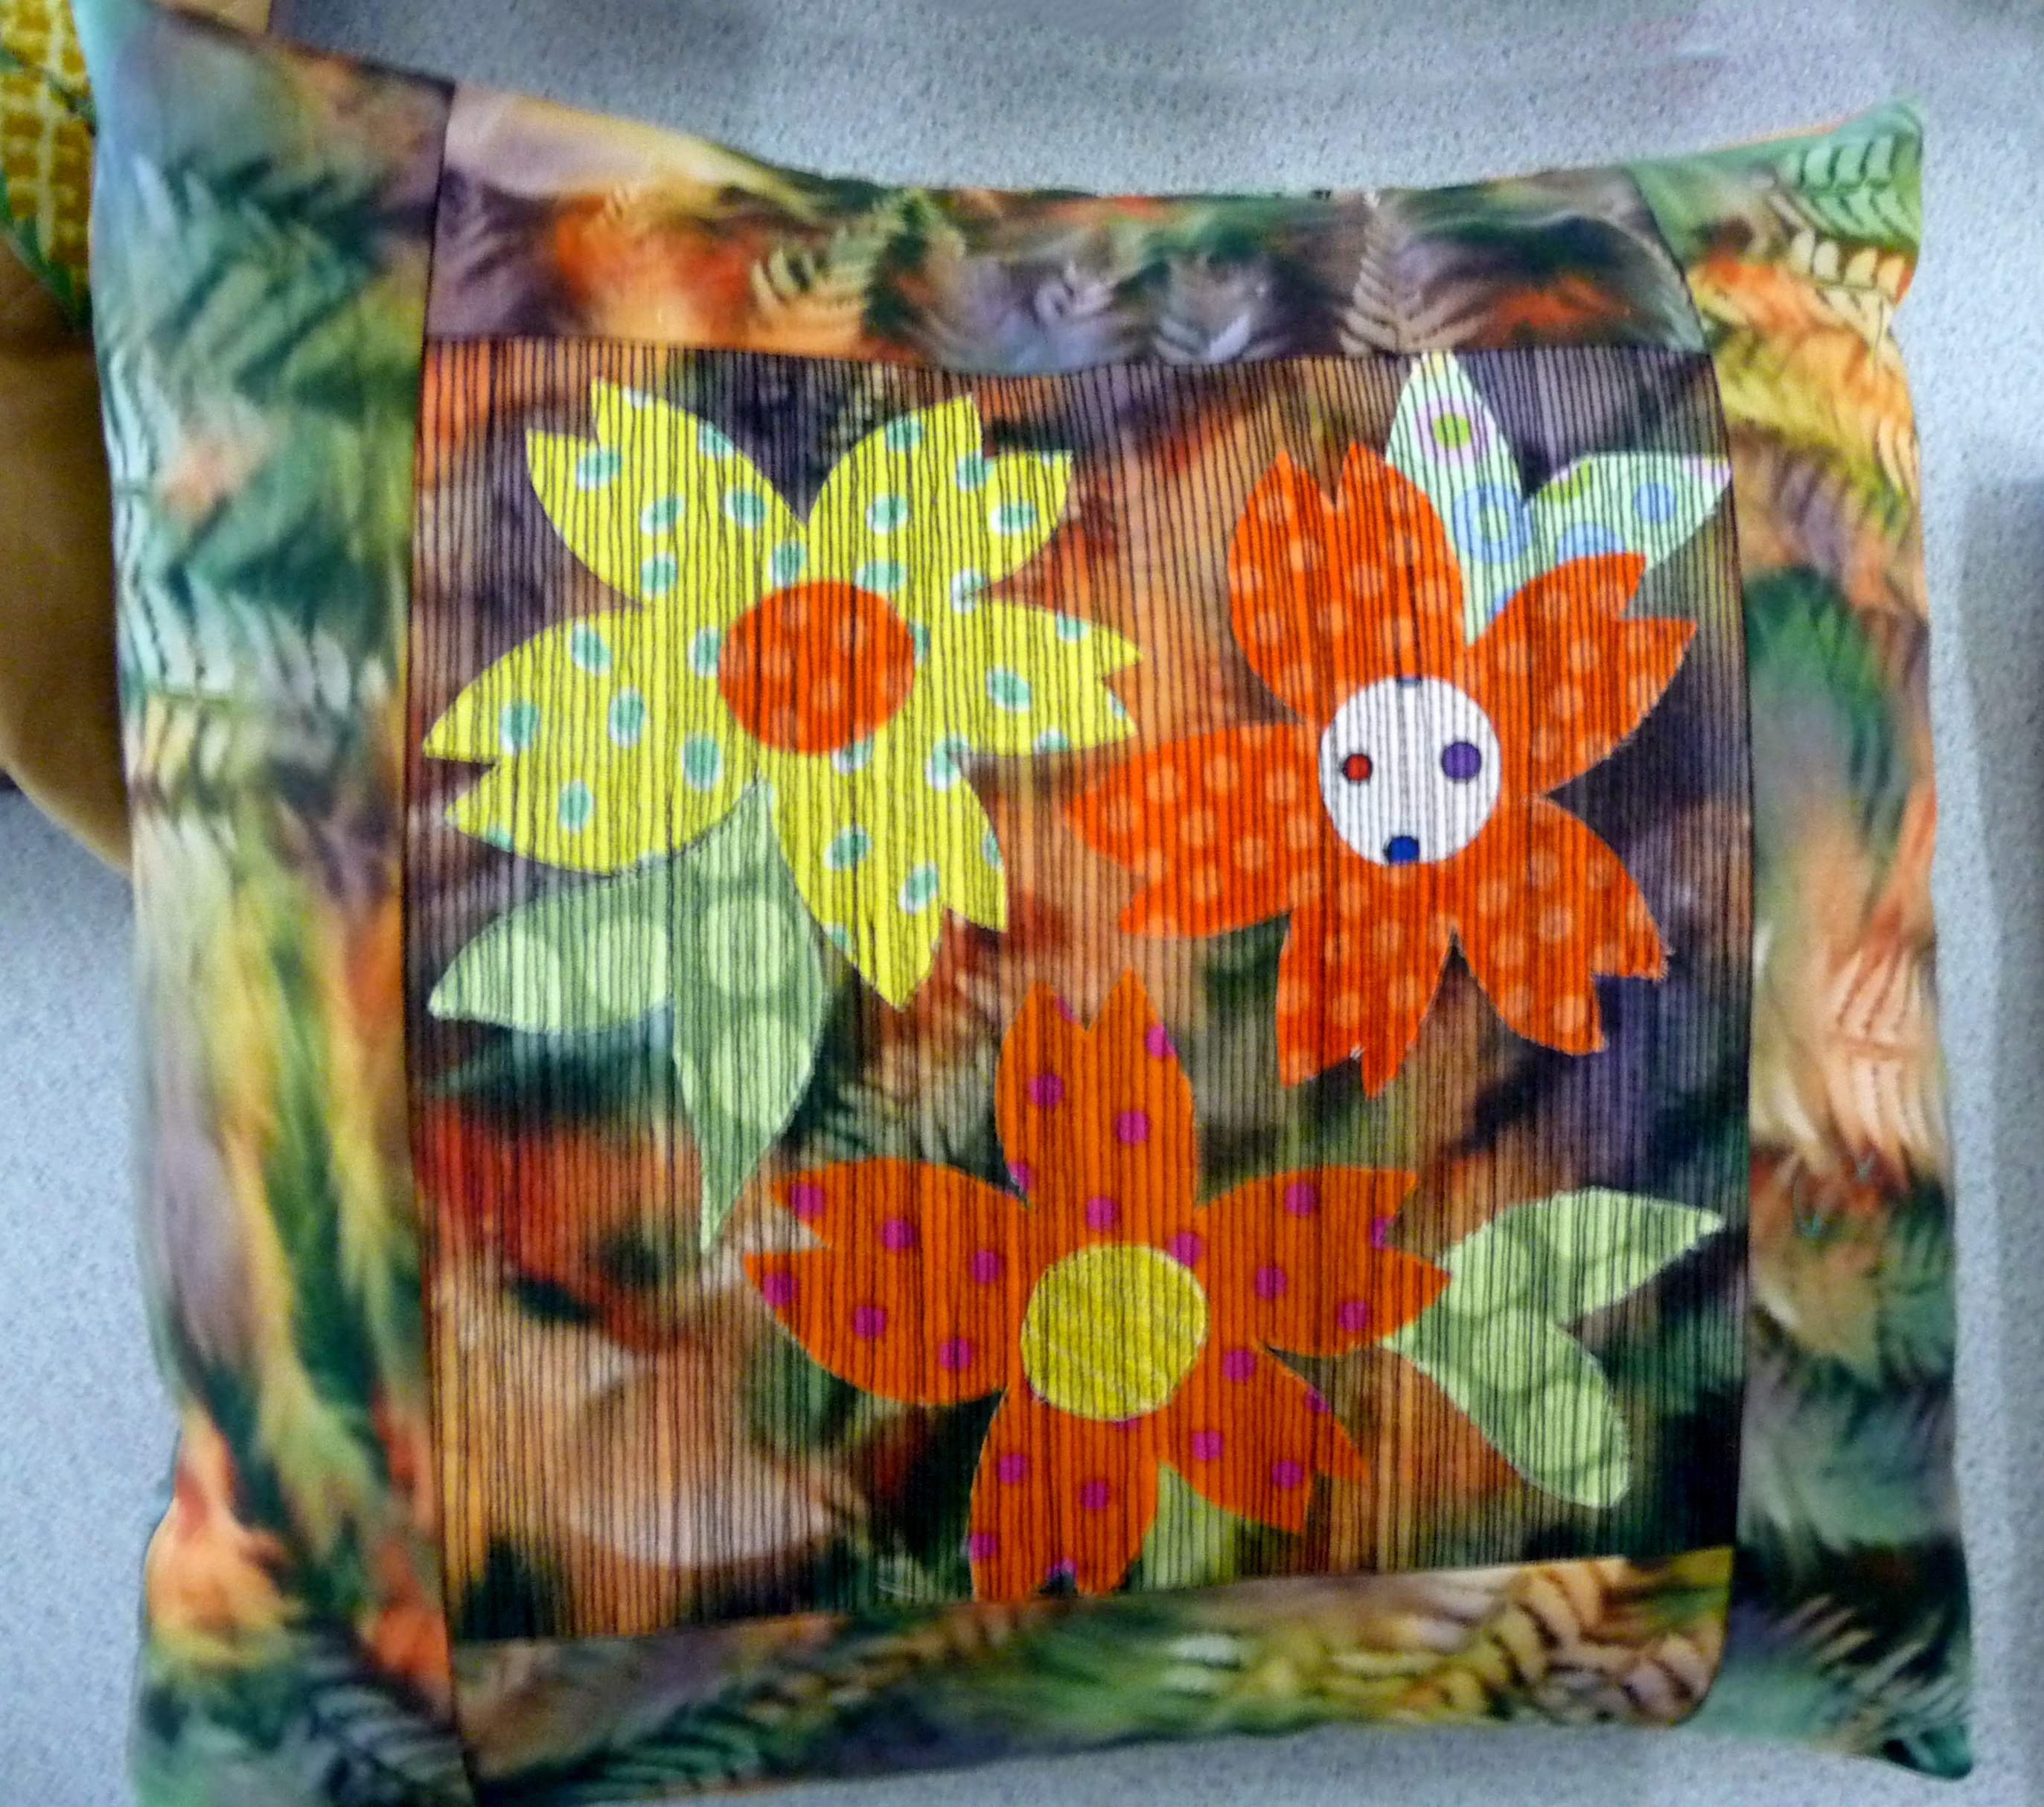 applique cushion with machine embroidery by Norma Heron